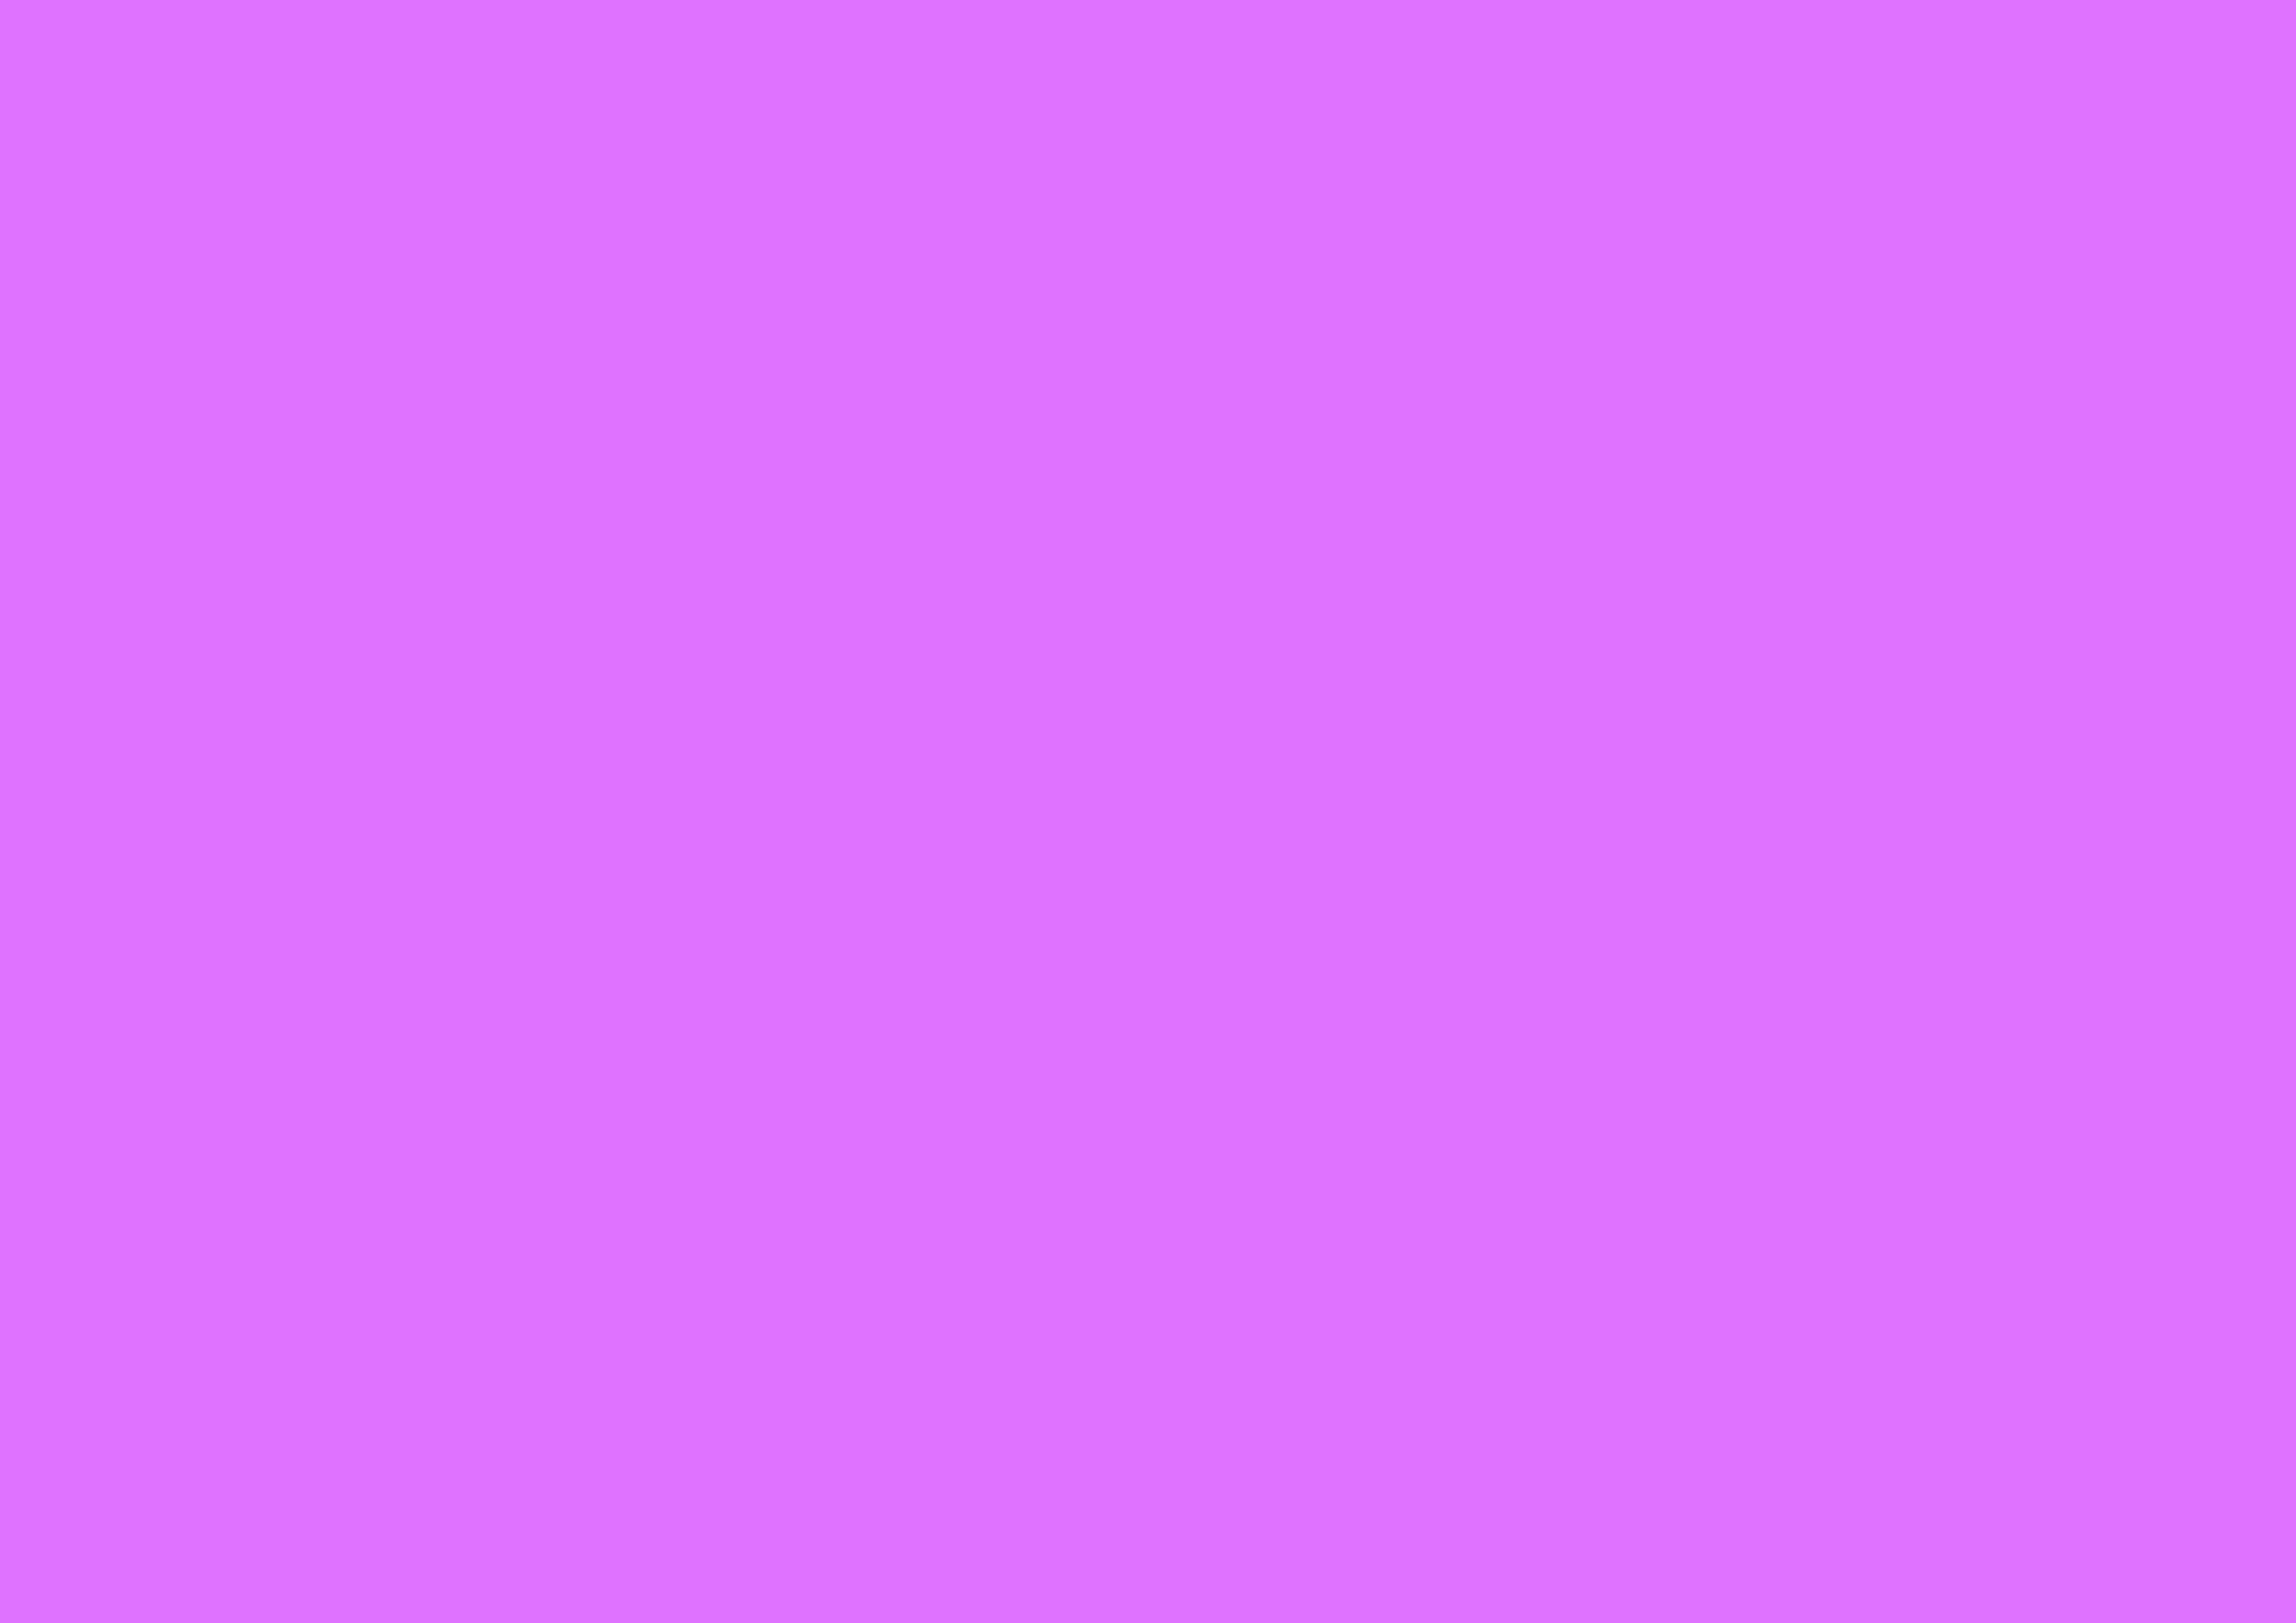 3508x2480 Heliotrope Solid Color Background